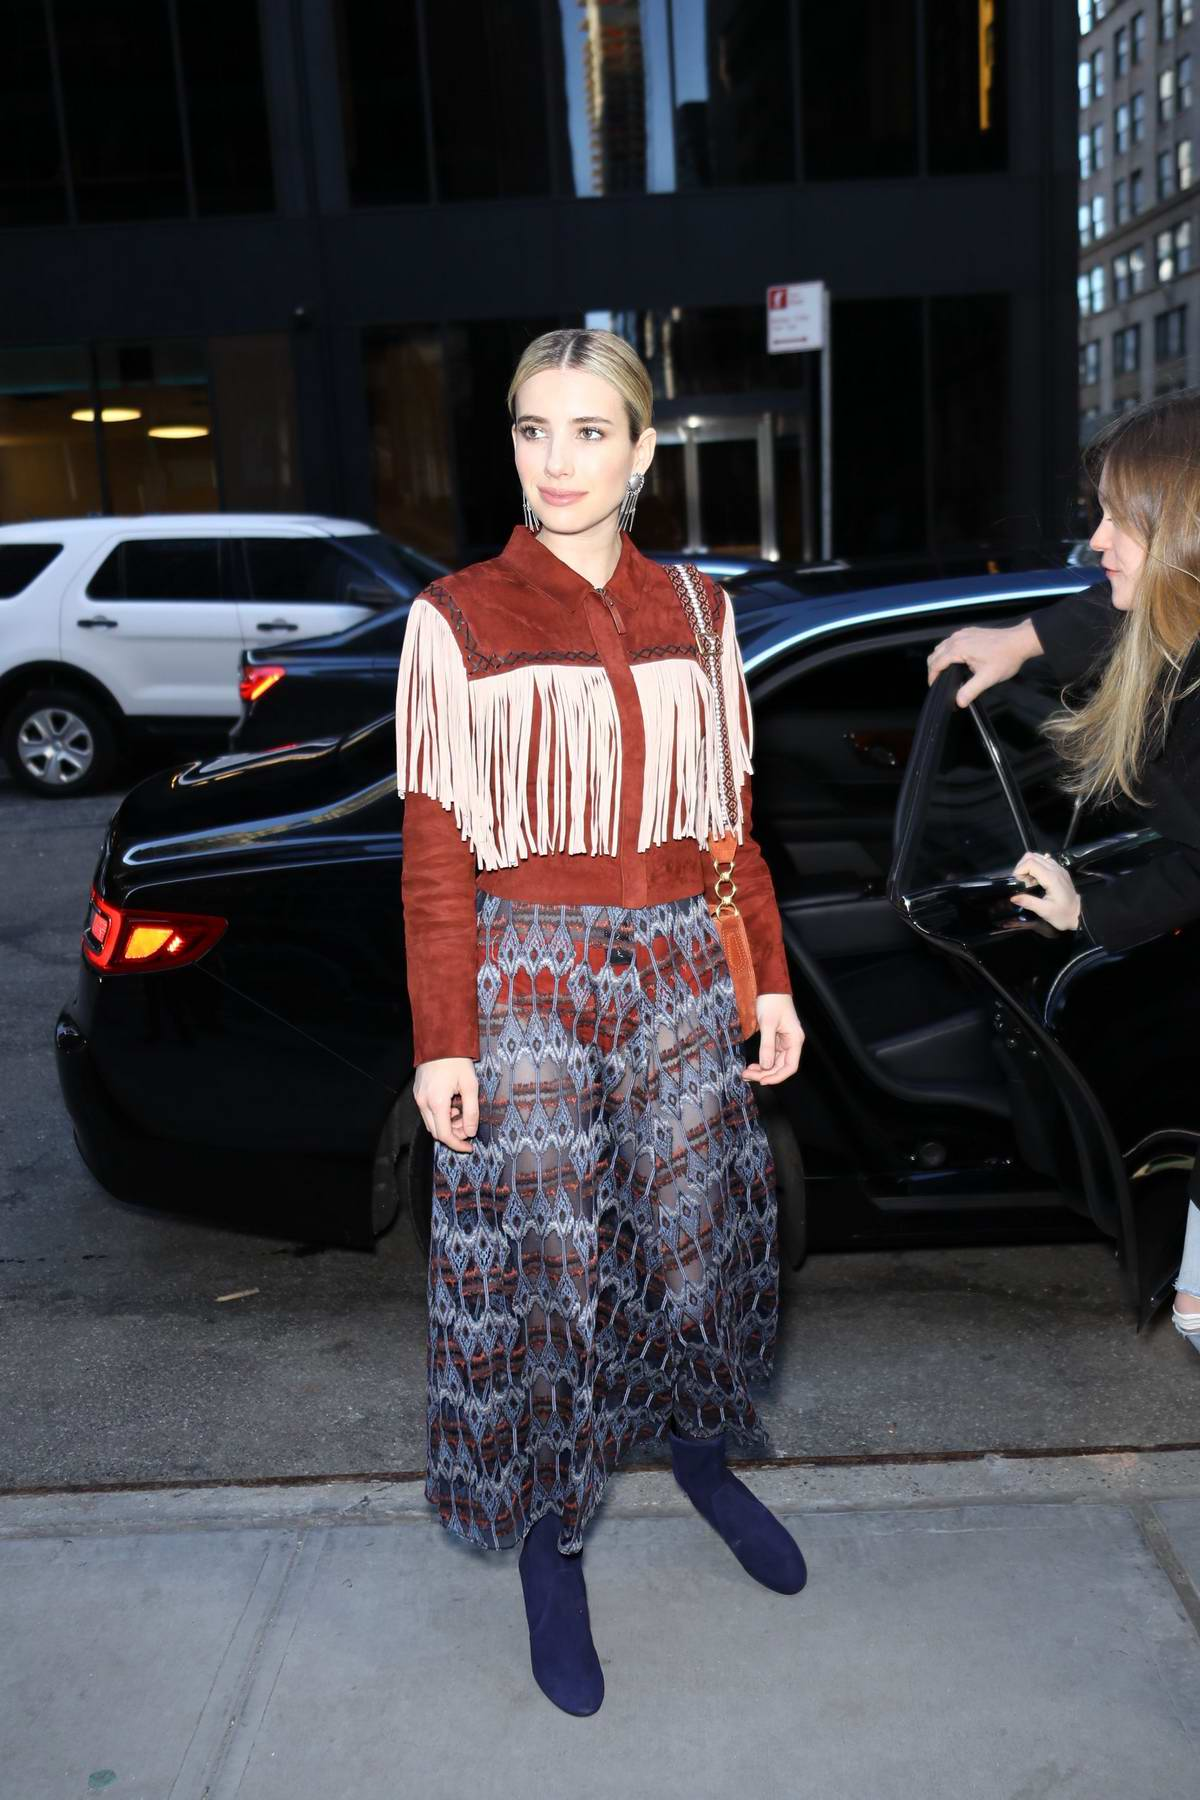 Emma Roberts attends the Long Champs Fashion Show during New York Fashion Week in New York City